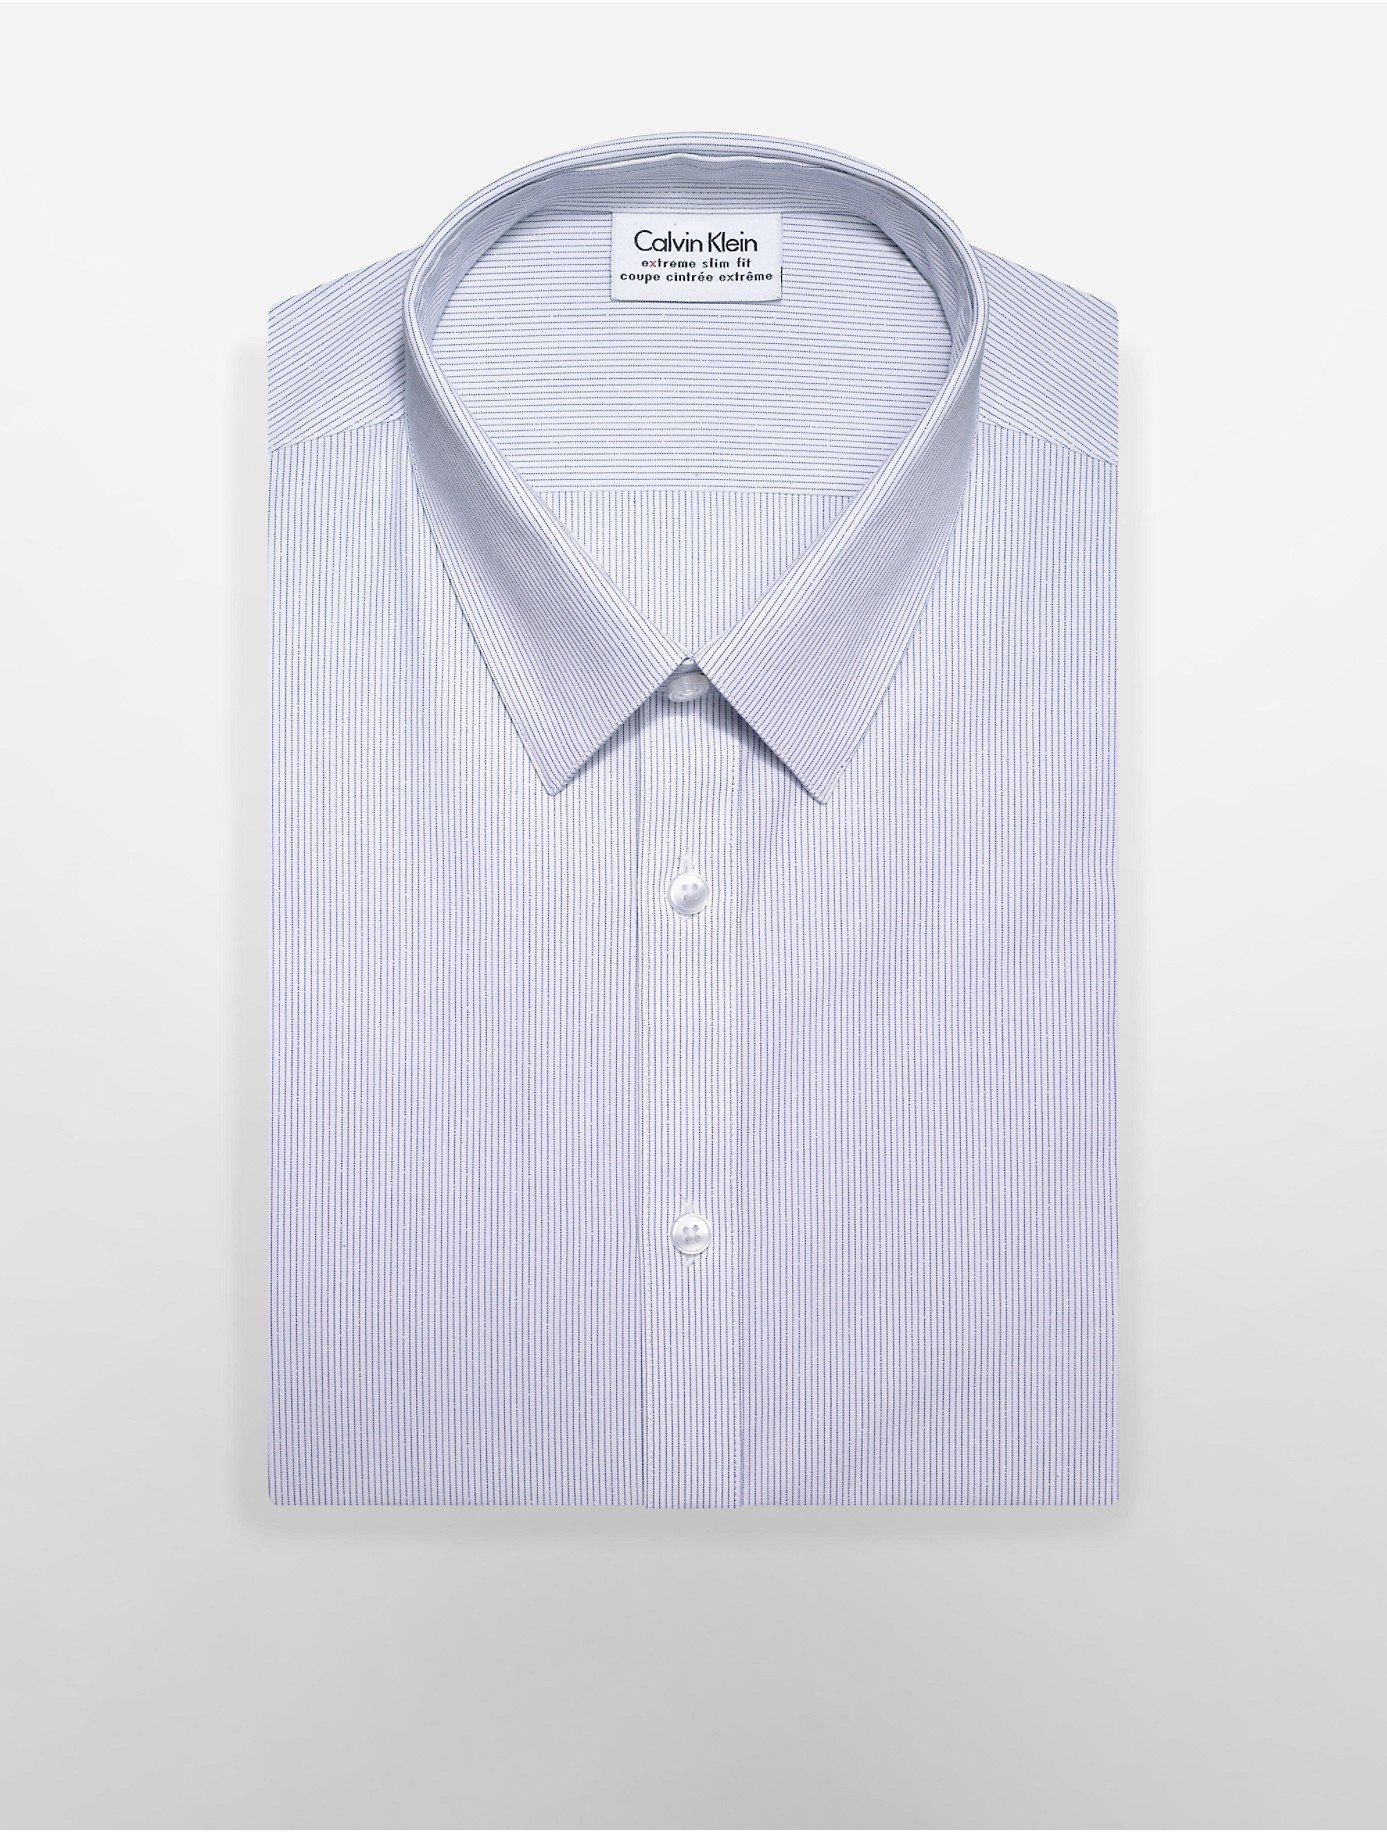 Calvin klein white label x fit ultra slim fit andes blue for Calvin klein x fit dress shirt